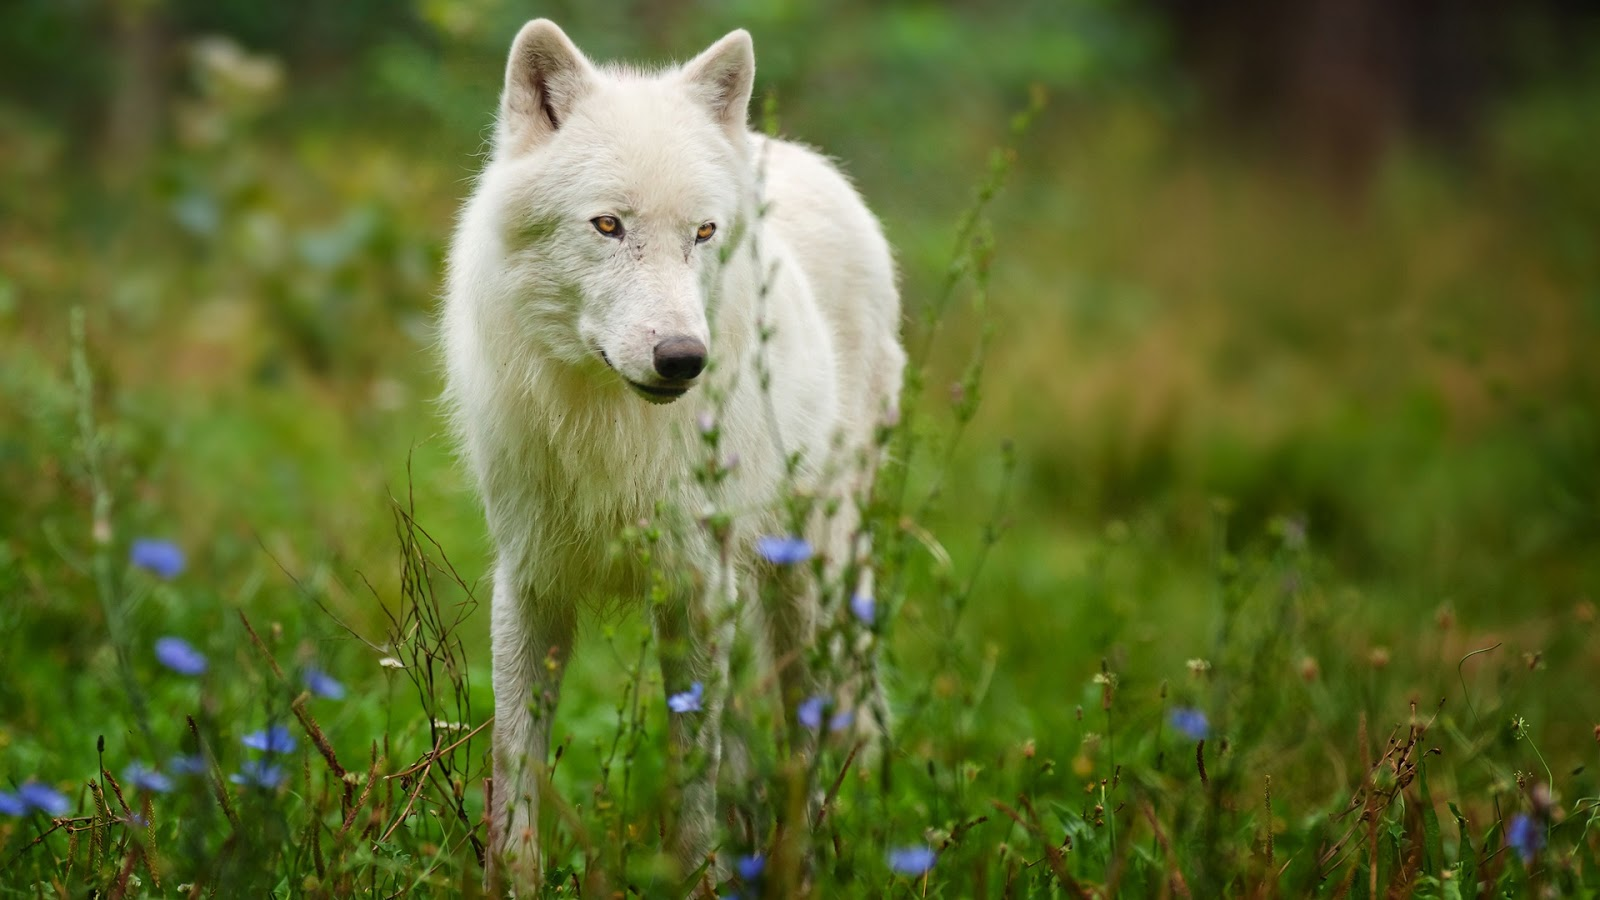 Cute Wallpapers Of All Kind Of Animals Arctic Predator White Wolf